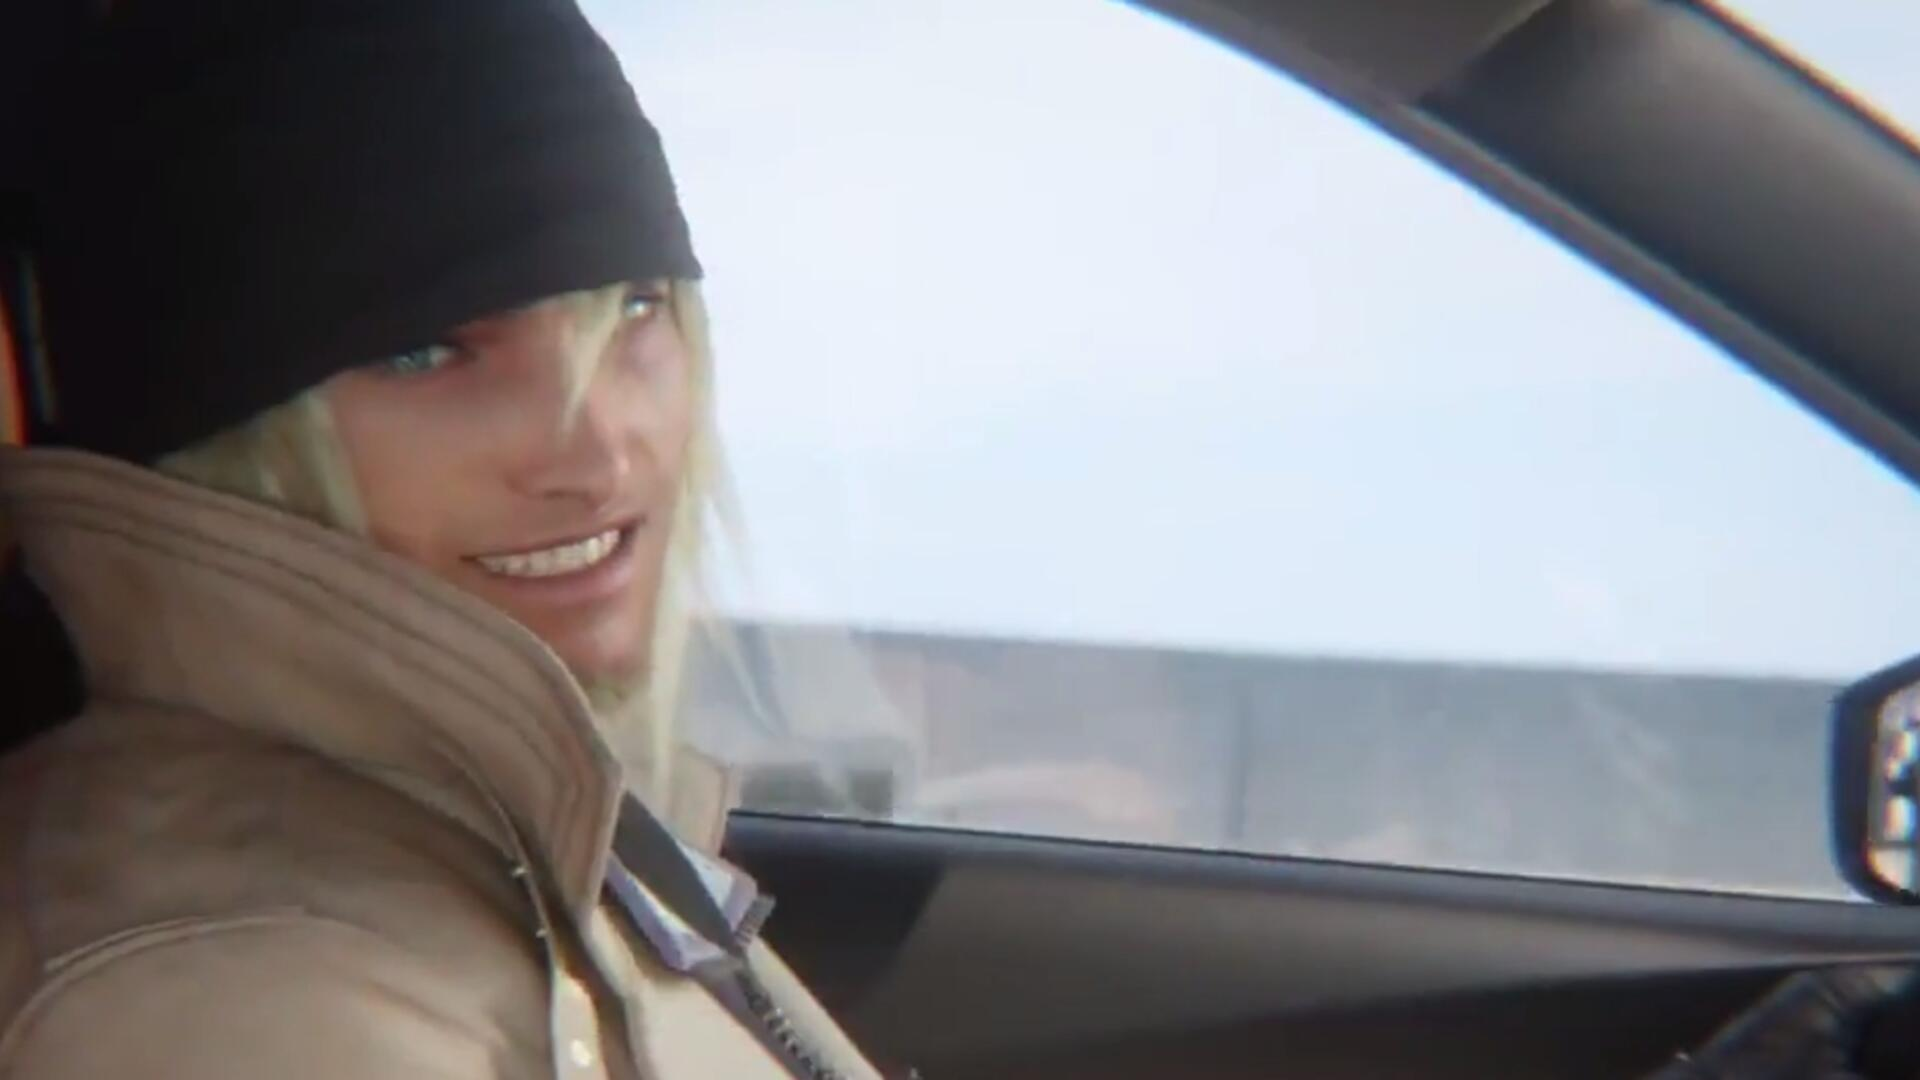 A New Nissan Ad Wants You to Replace People You Love With Final Fantasy XIII Characters